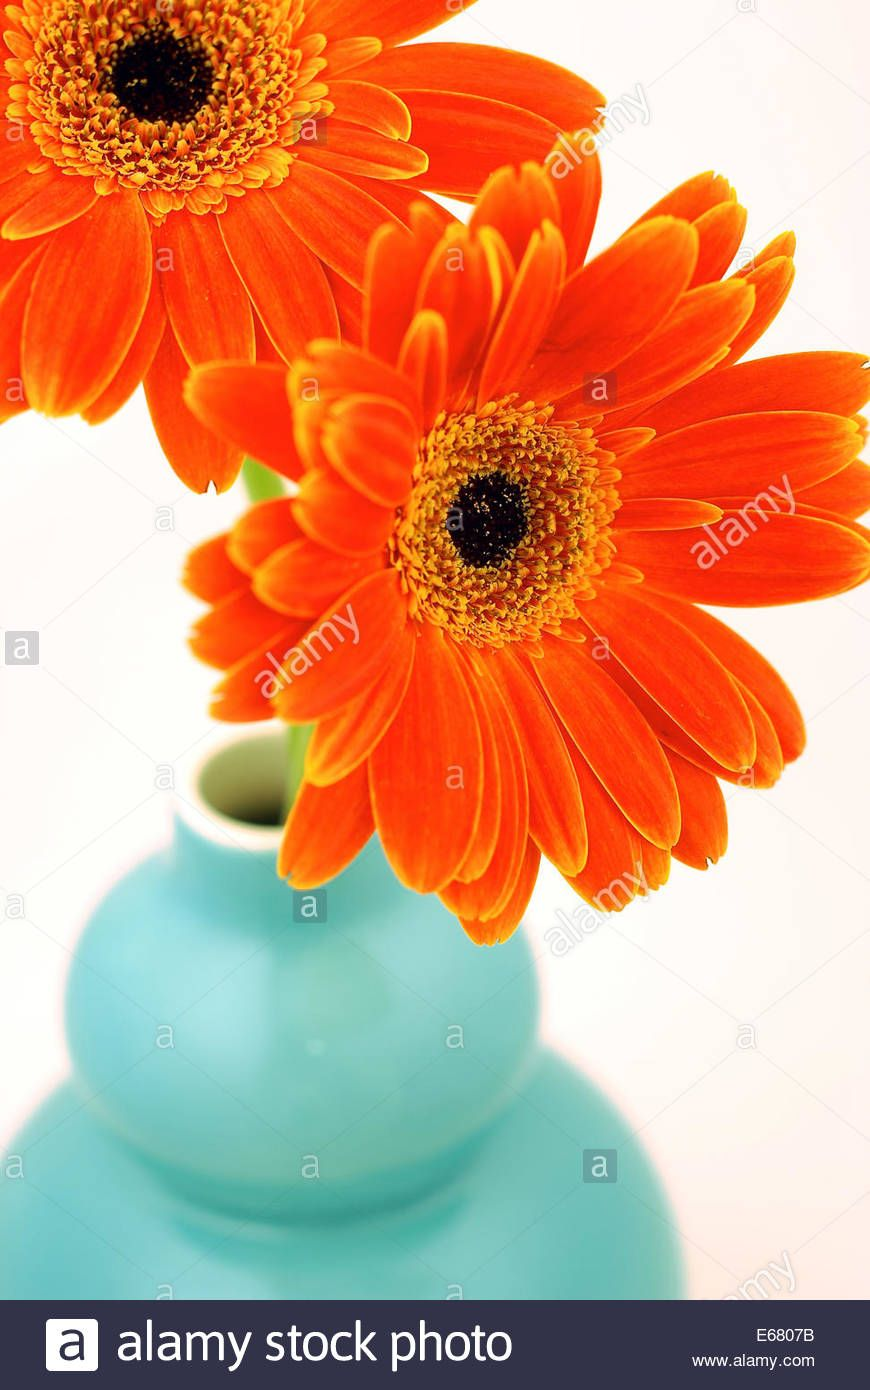 Bouquet Of Red Orange Gerbera Daisies In A Turquoise Vase Turquoise Vase Gerbera Daisy Photo Bouquet